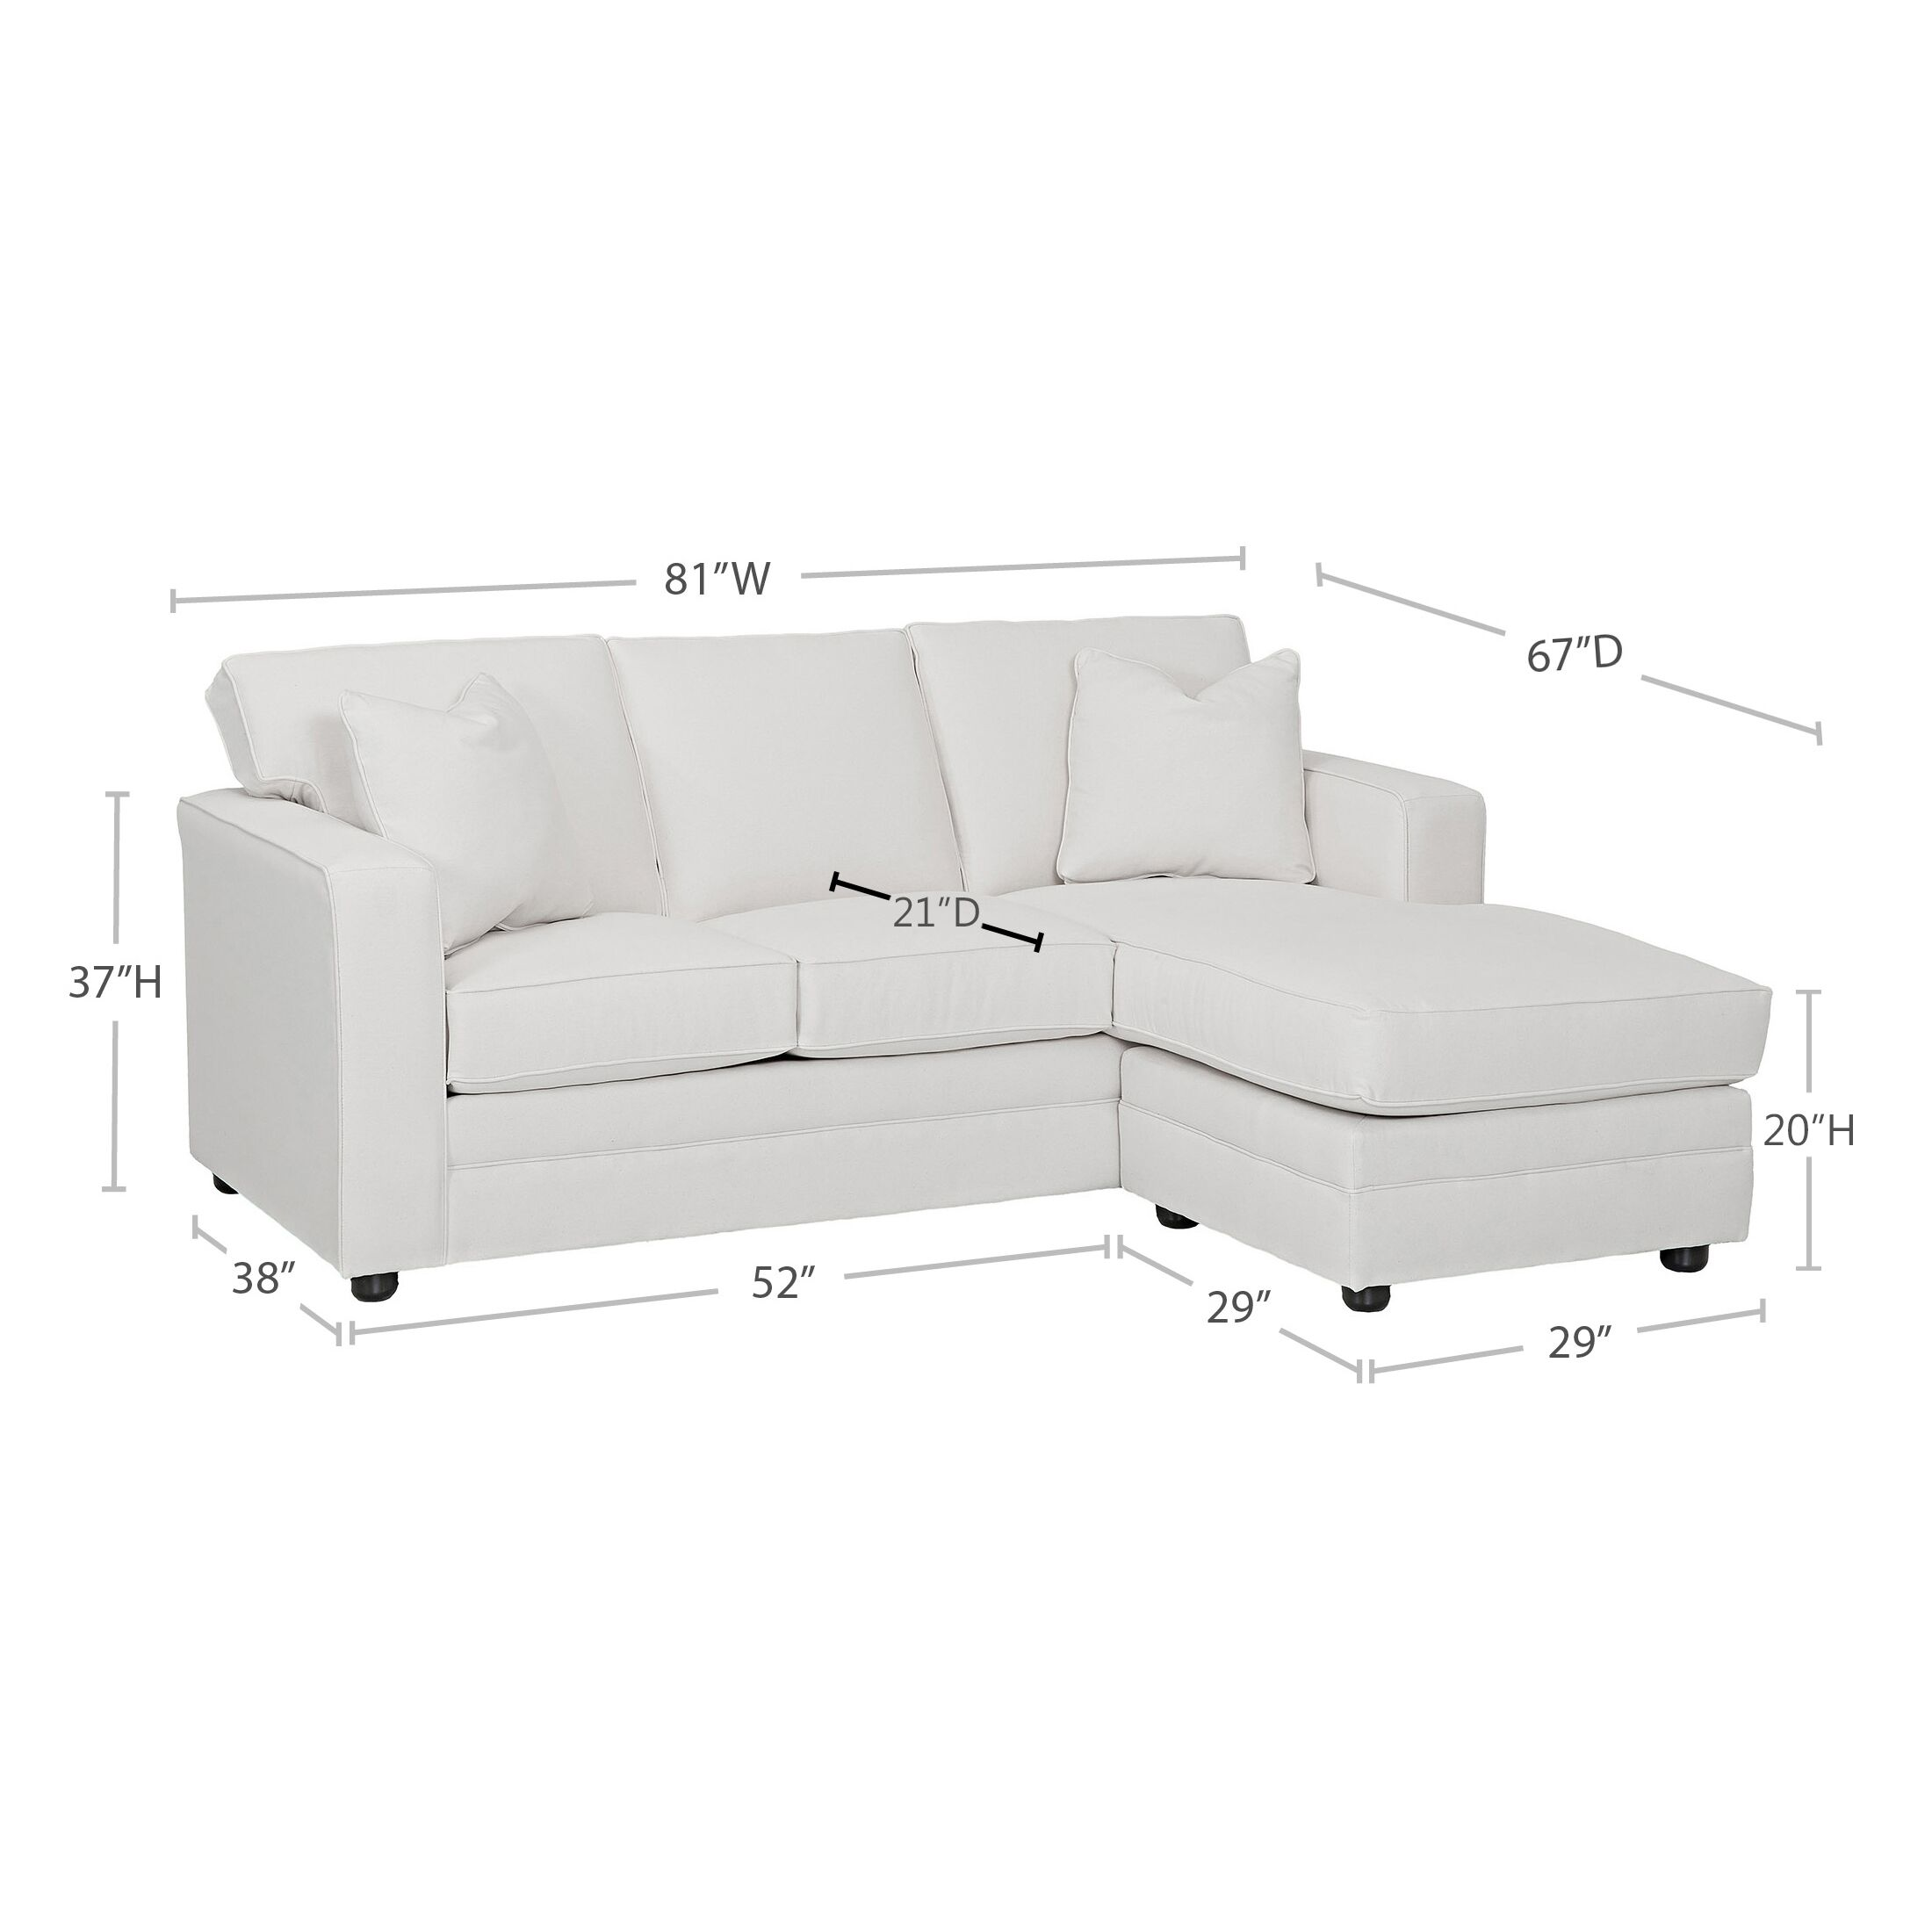 Andrew Reversible Sectional Body Fabric: Classic Smoke, Pillow Fabric: Tina Gulfstream, Piping Fabric: Spinnsol Optic White